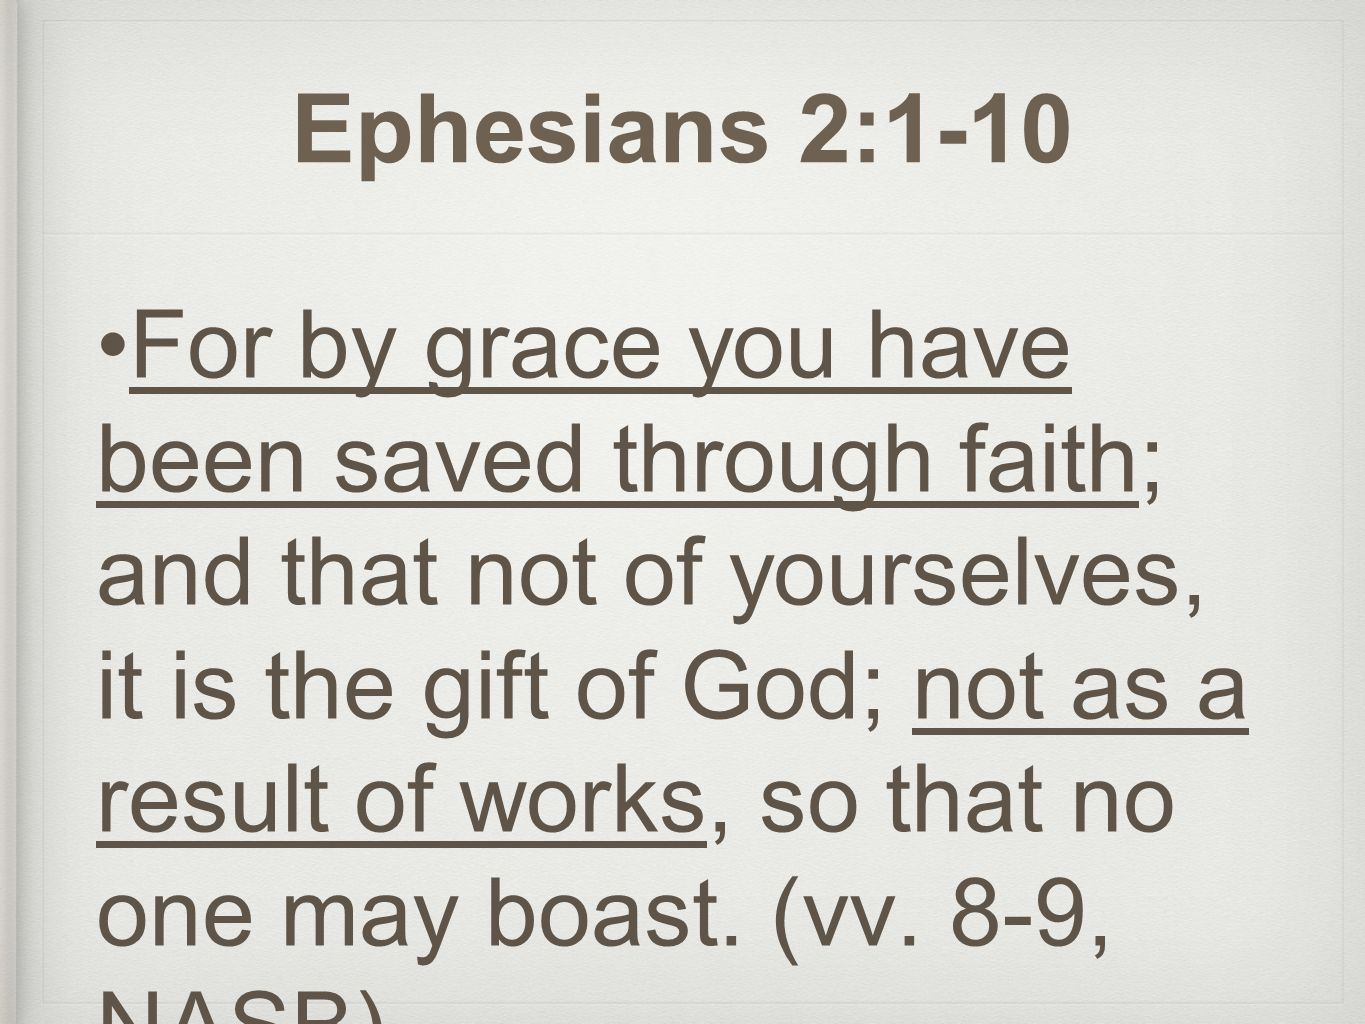 Ephesians 2:1-10 For by grace you have been saved through faith; and that not of yourselves, it is the gift of God; not as a result of works, so that no one may boast.